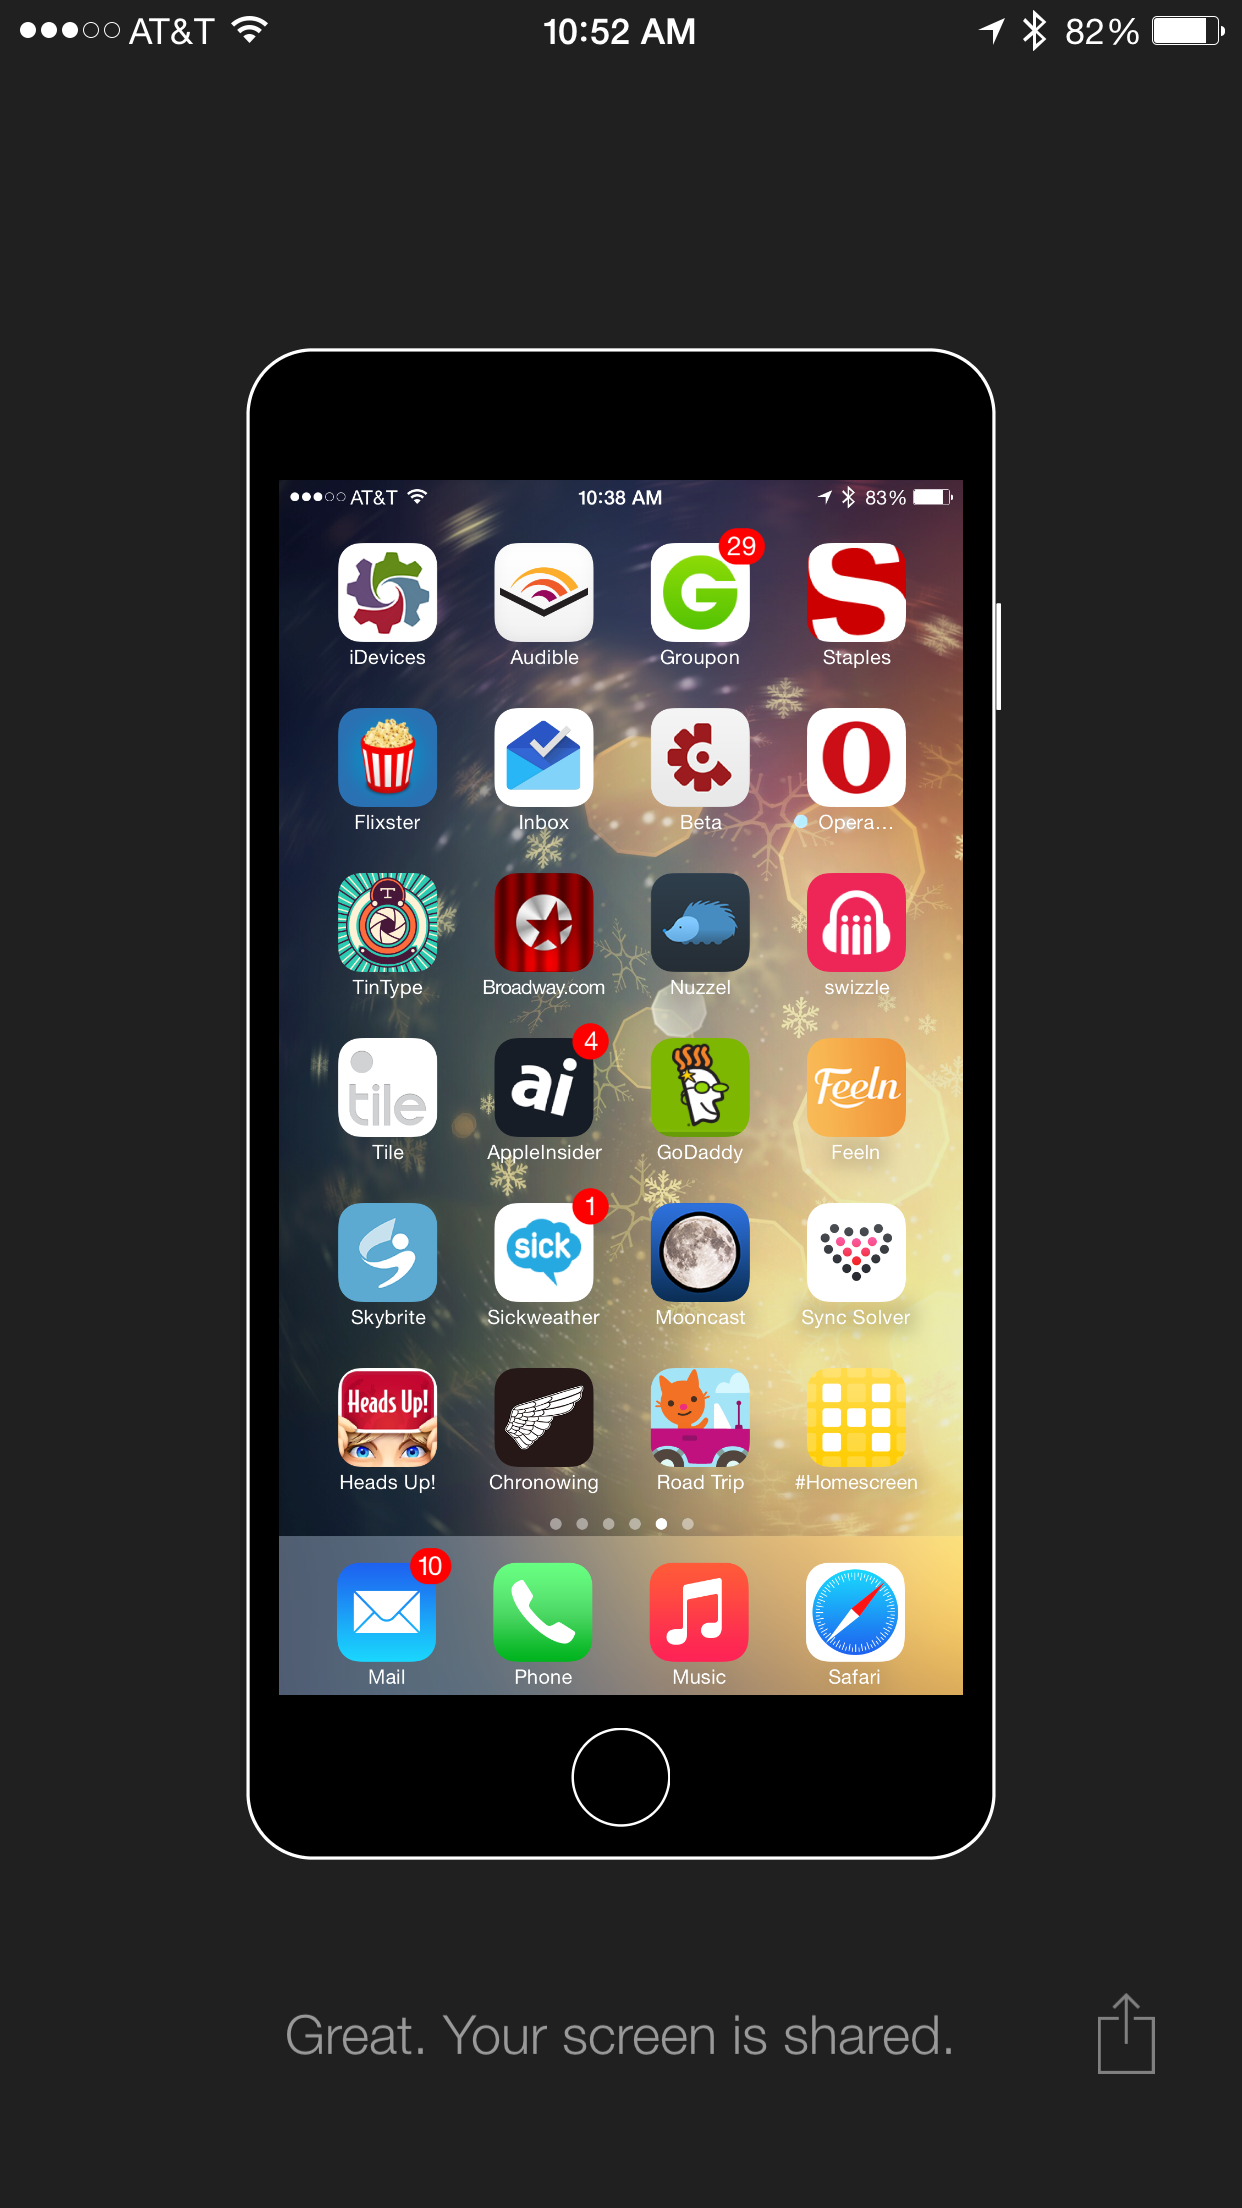 best new iphone apps view the top apps this week courtesy of the new iphone 13640